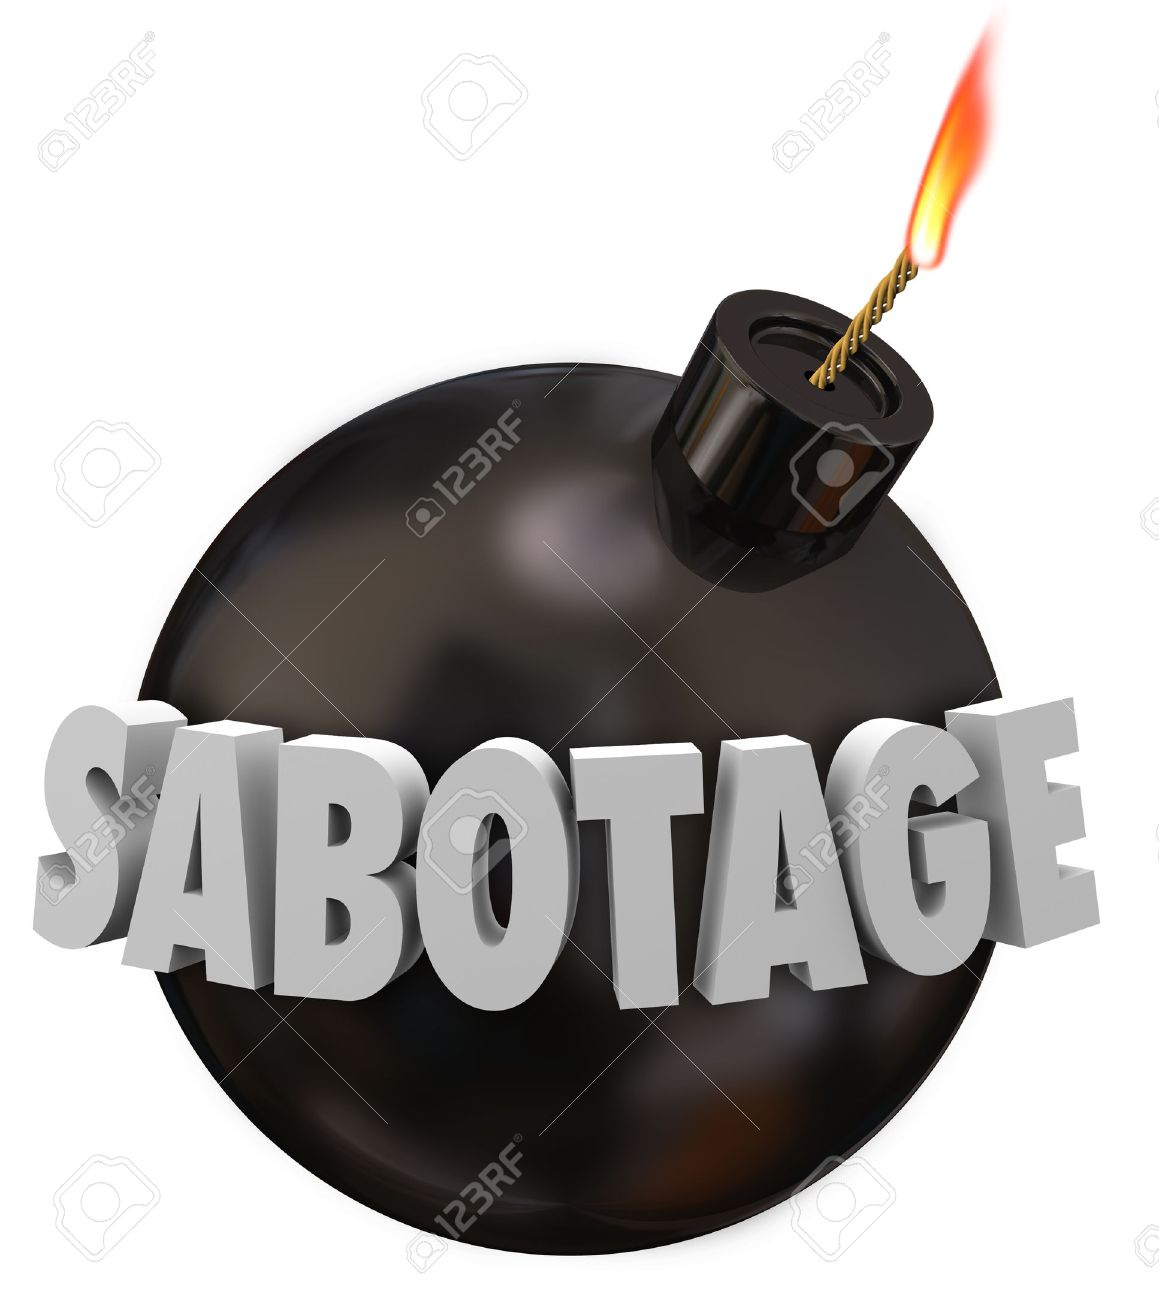 how to sabotage someone